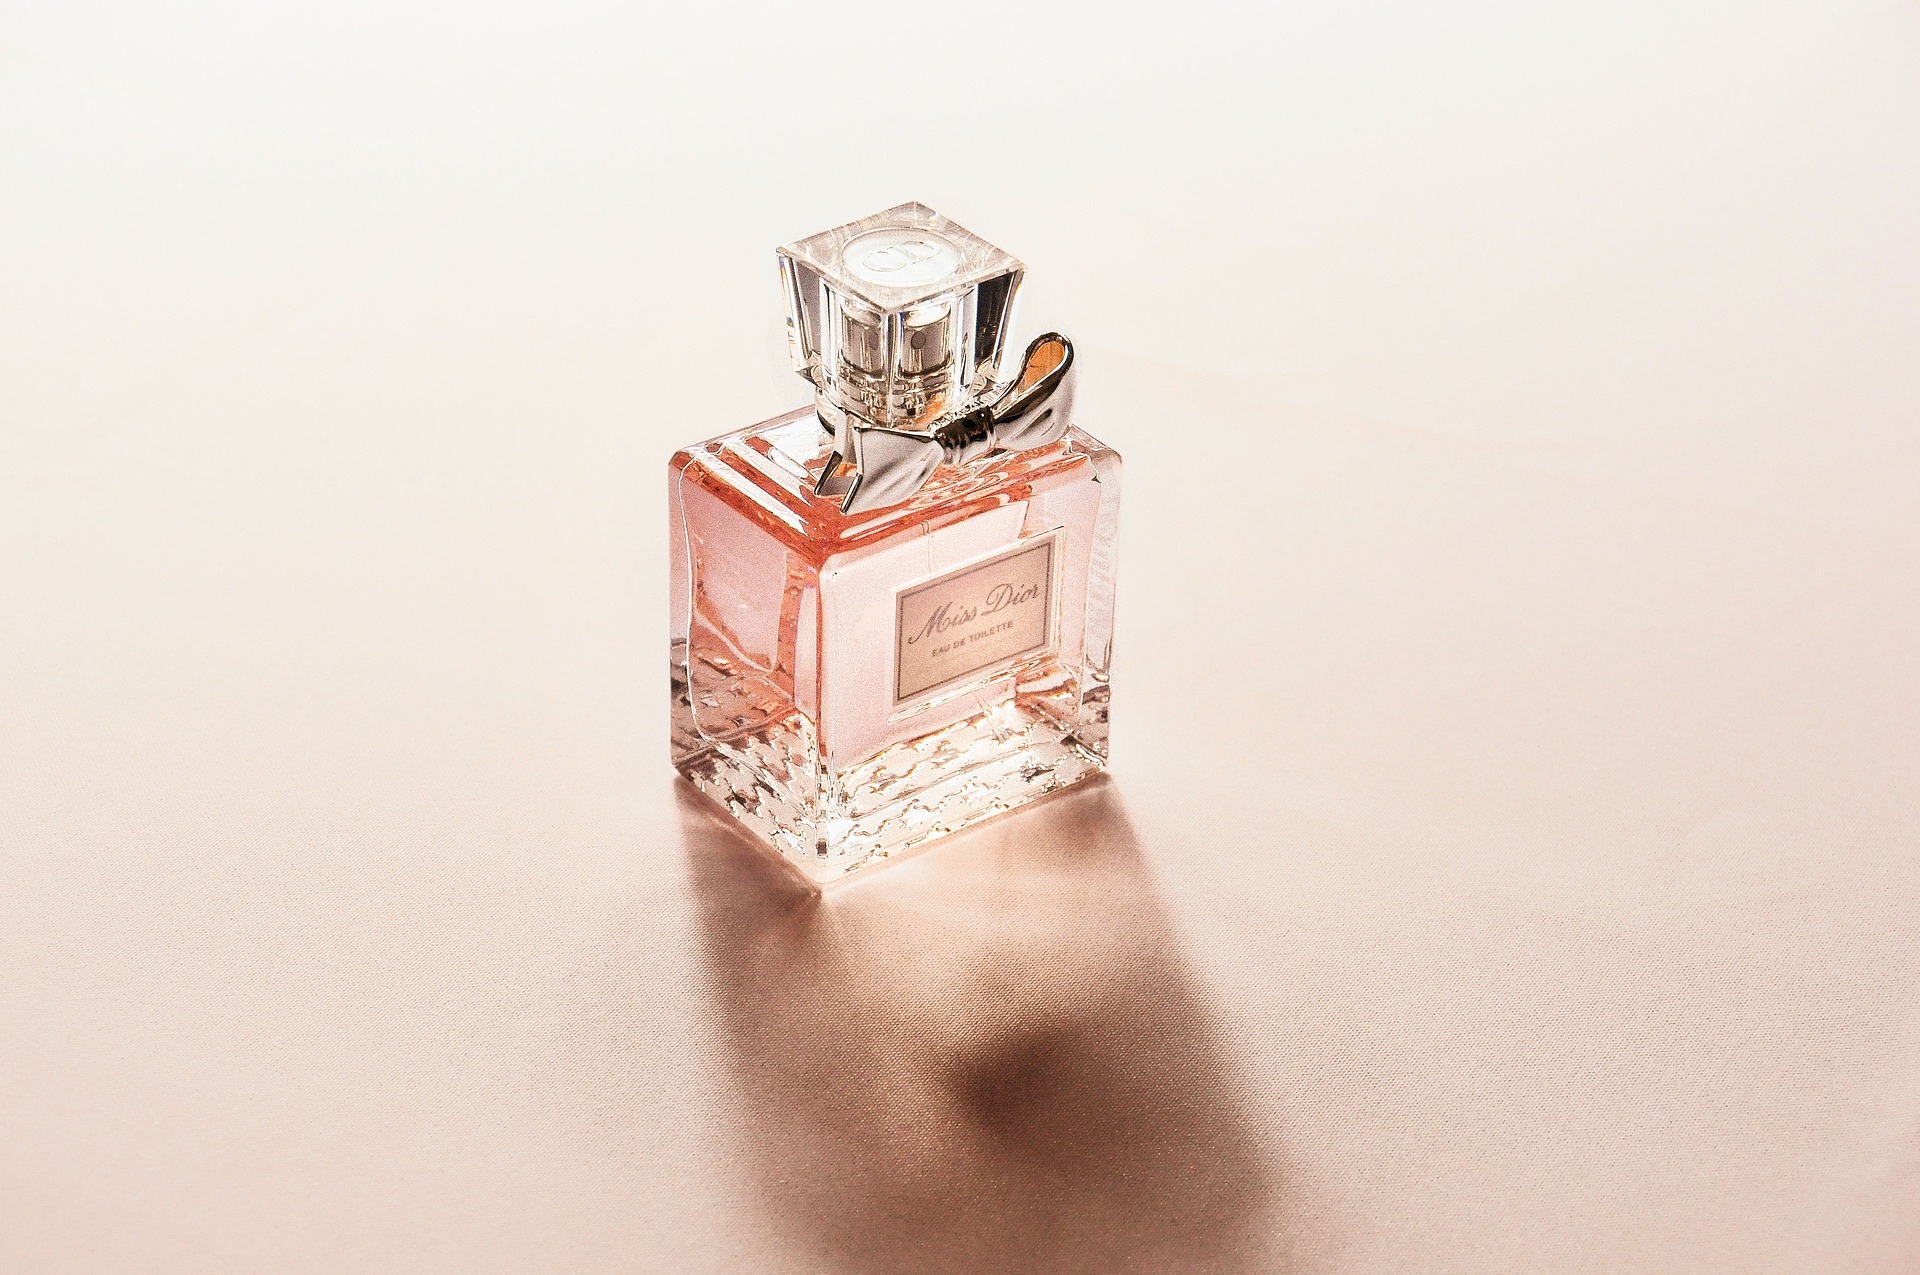 Choosing Perfumes - the name counts! Image by StockSnap from Pixabay